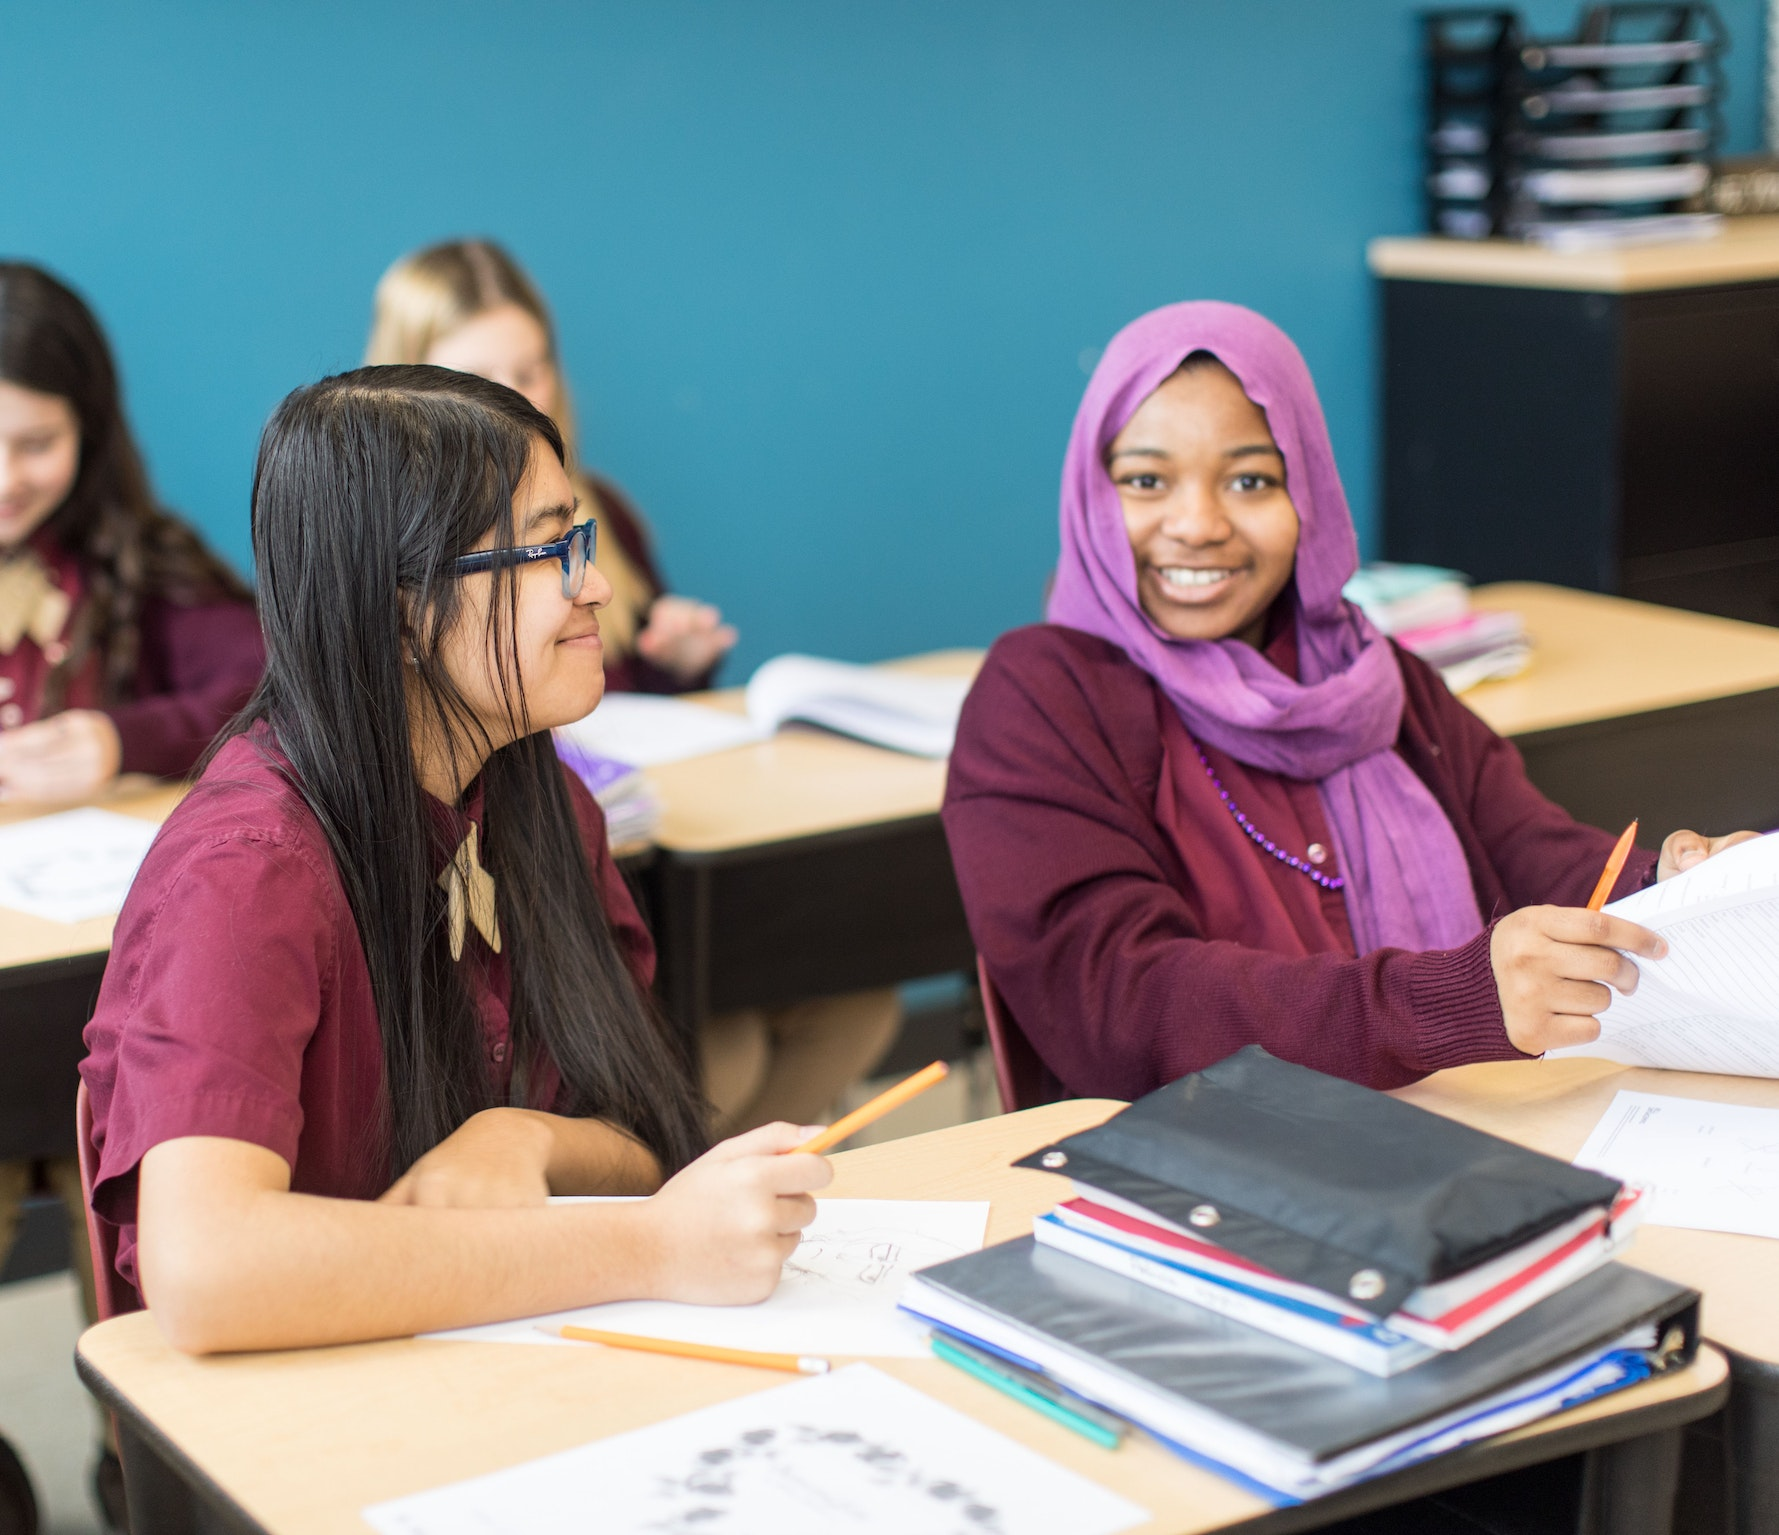 Two young female students smile while seated at their desks in class